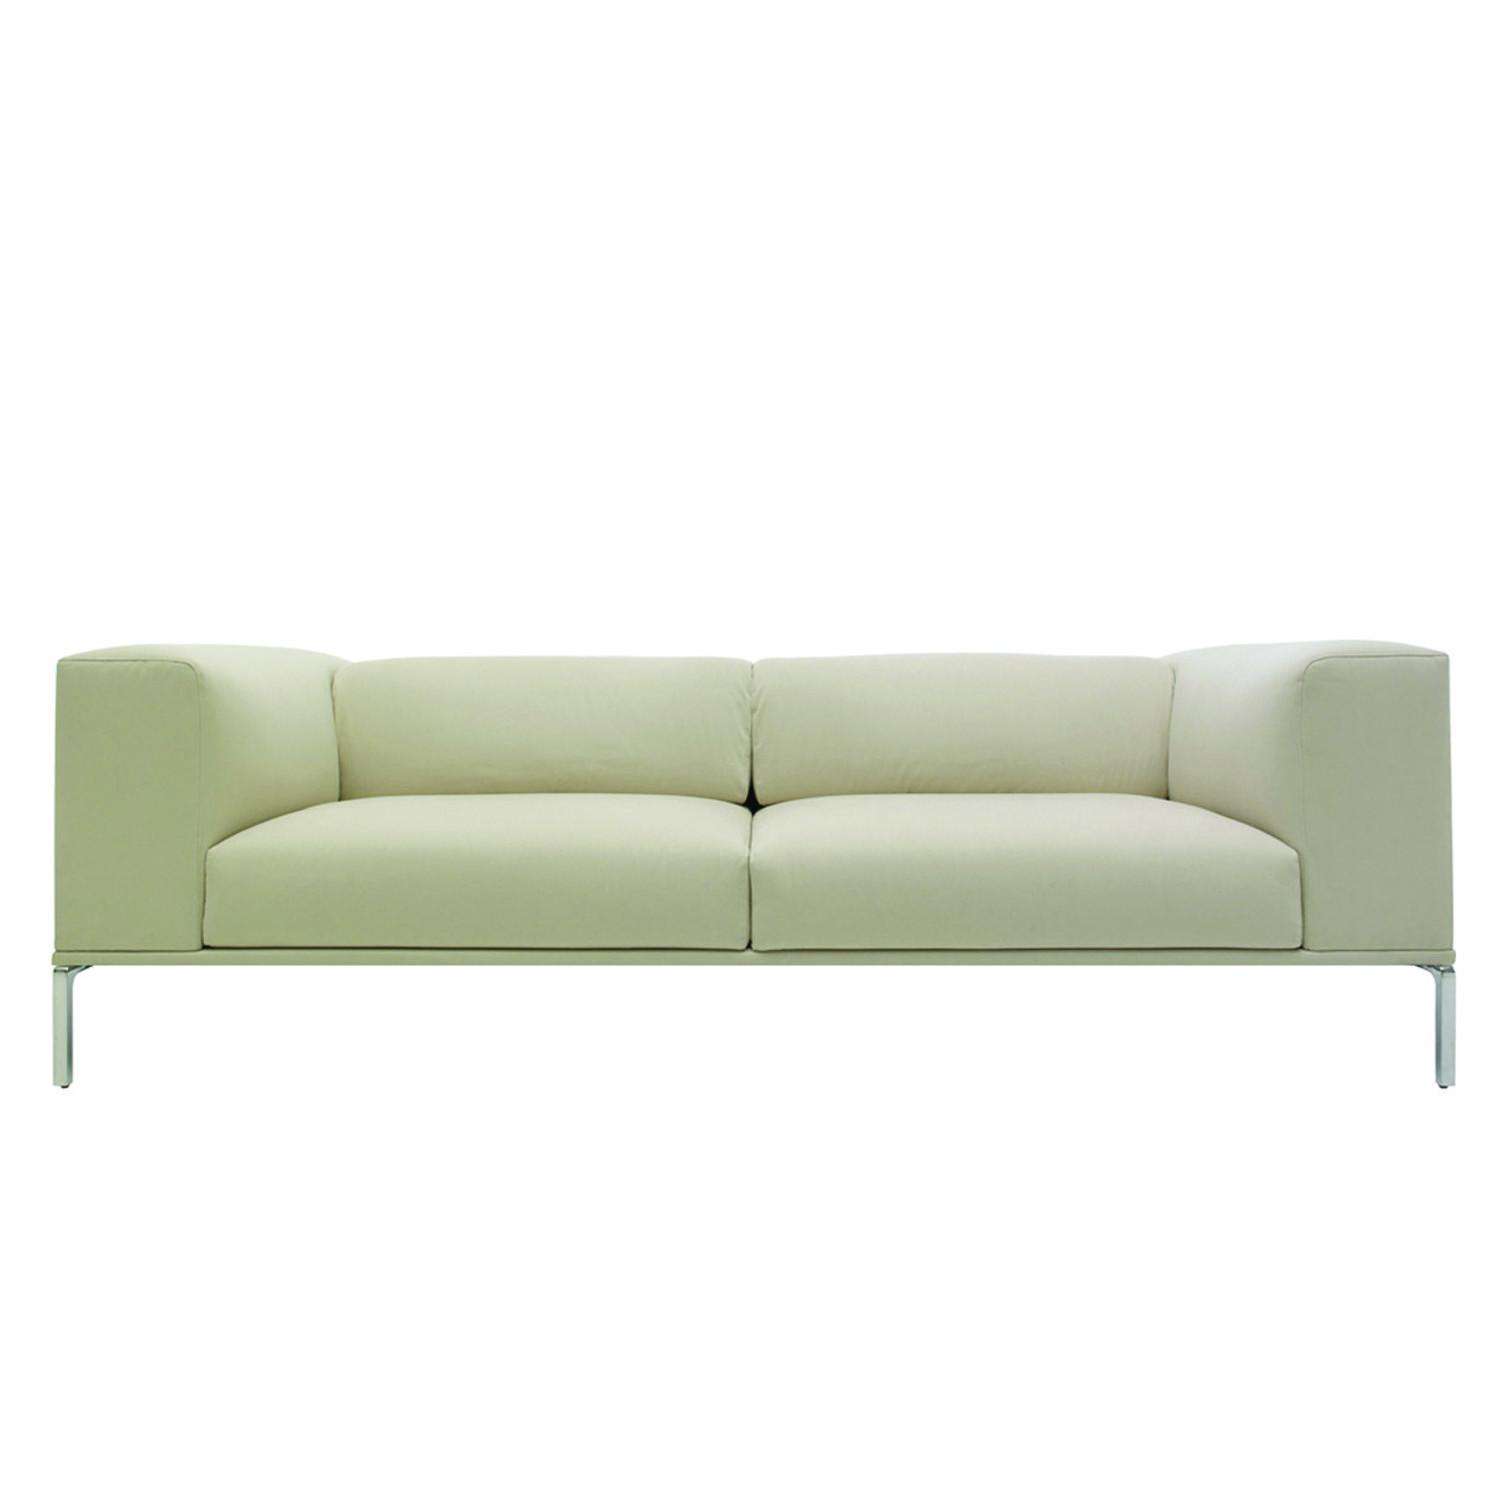 191 Moov Sofa WhiteLow Back